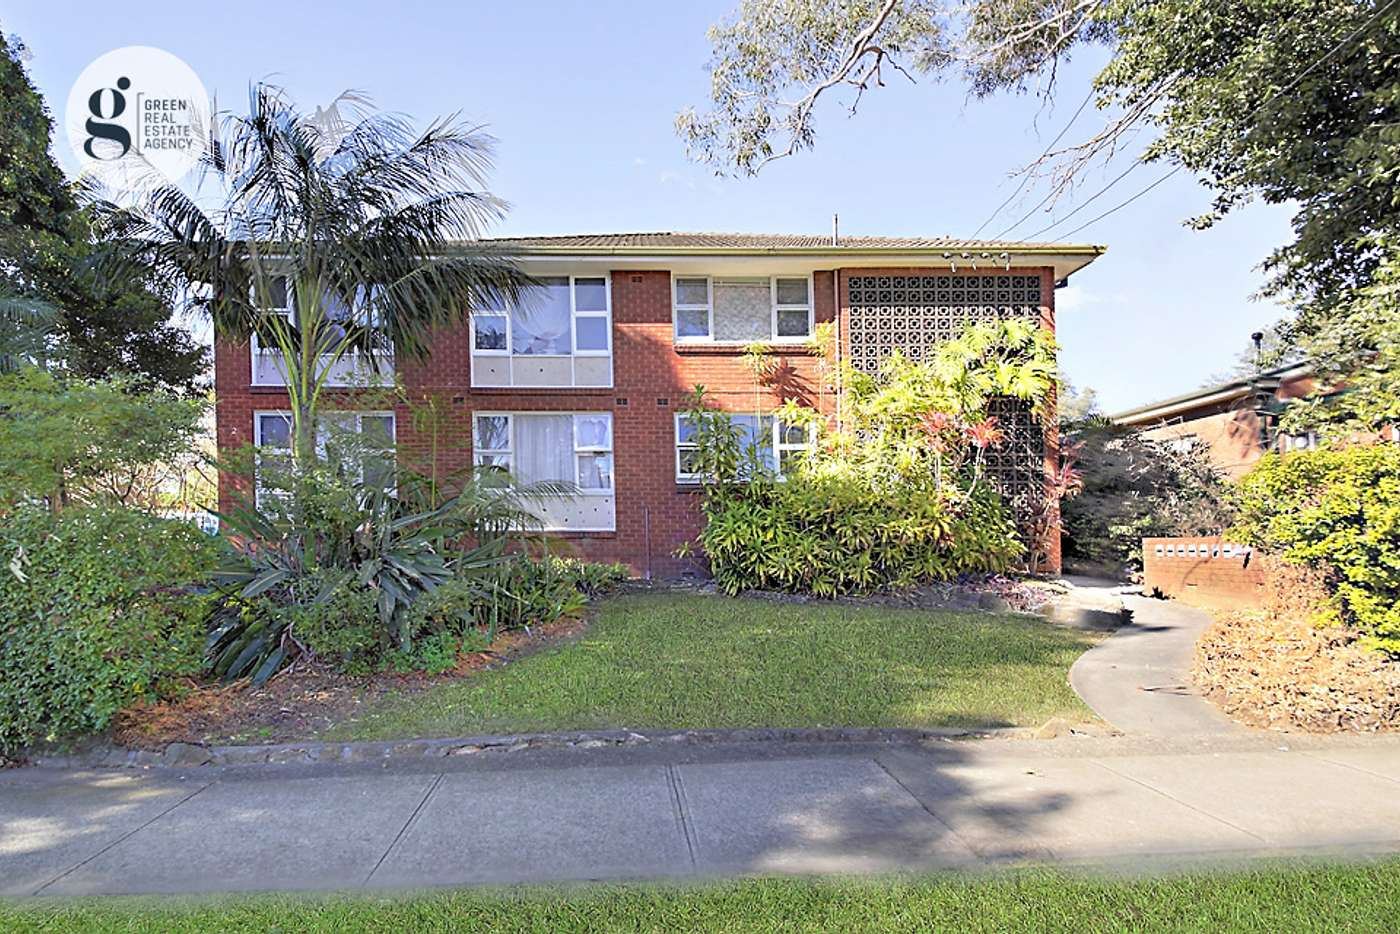 Main view of Homely unit listing, 7/2 Maxim Street, West Ryde NSW 2114